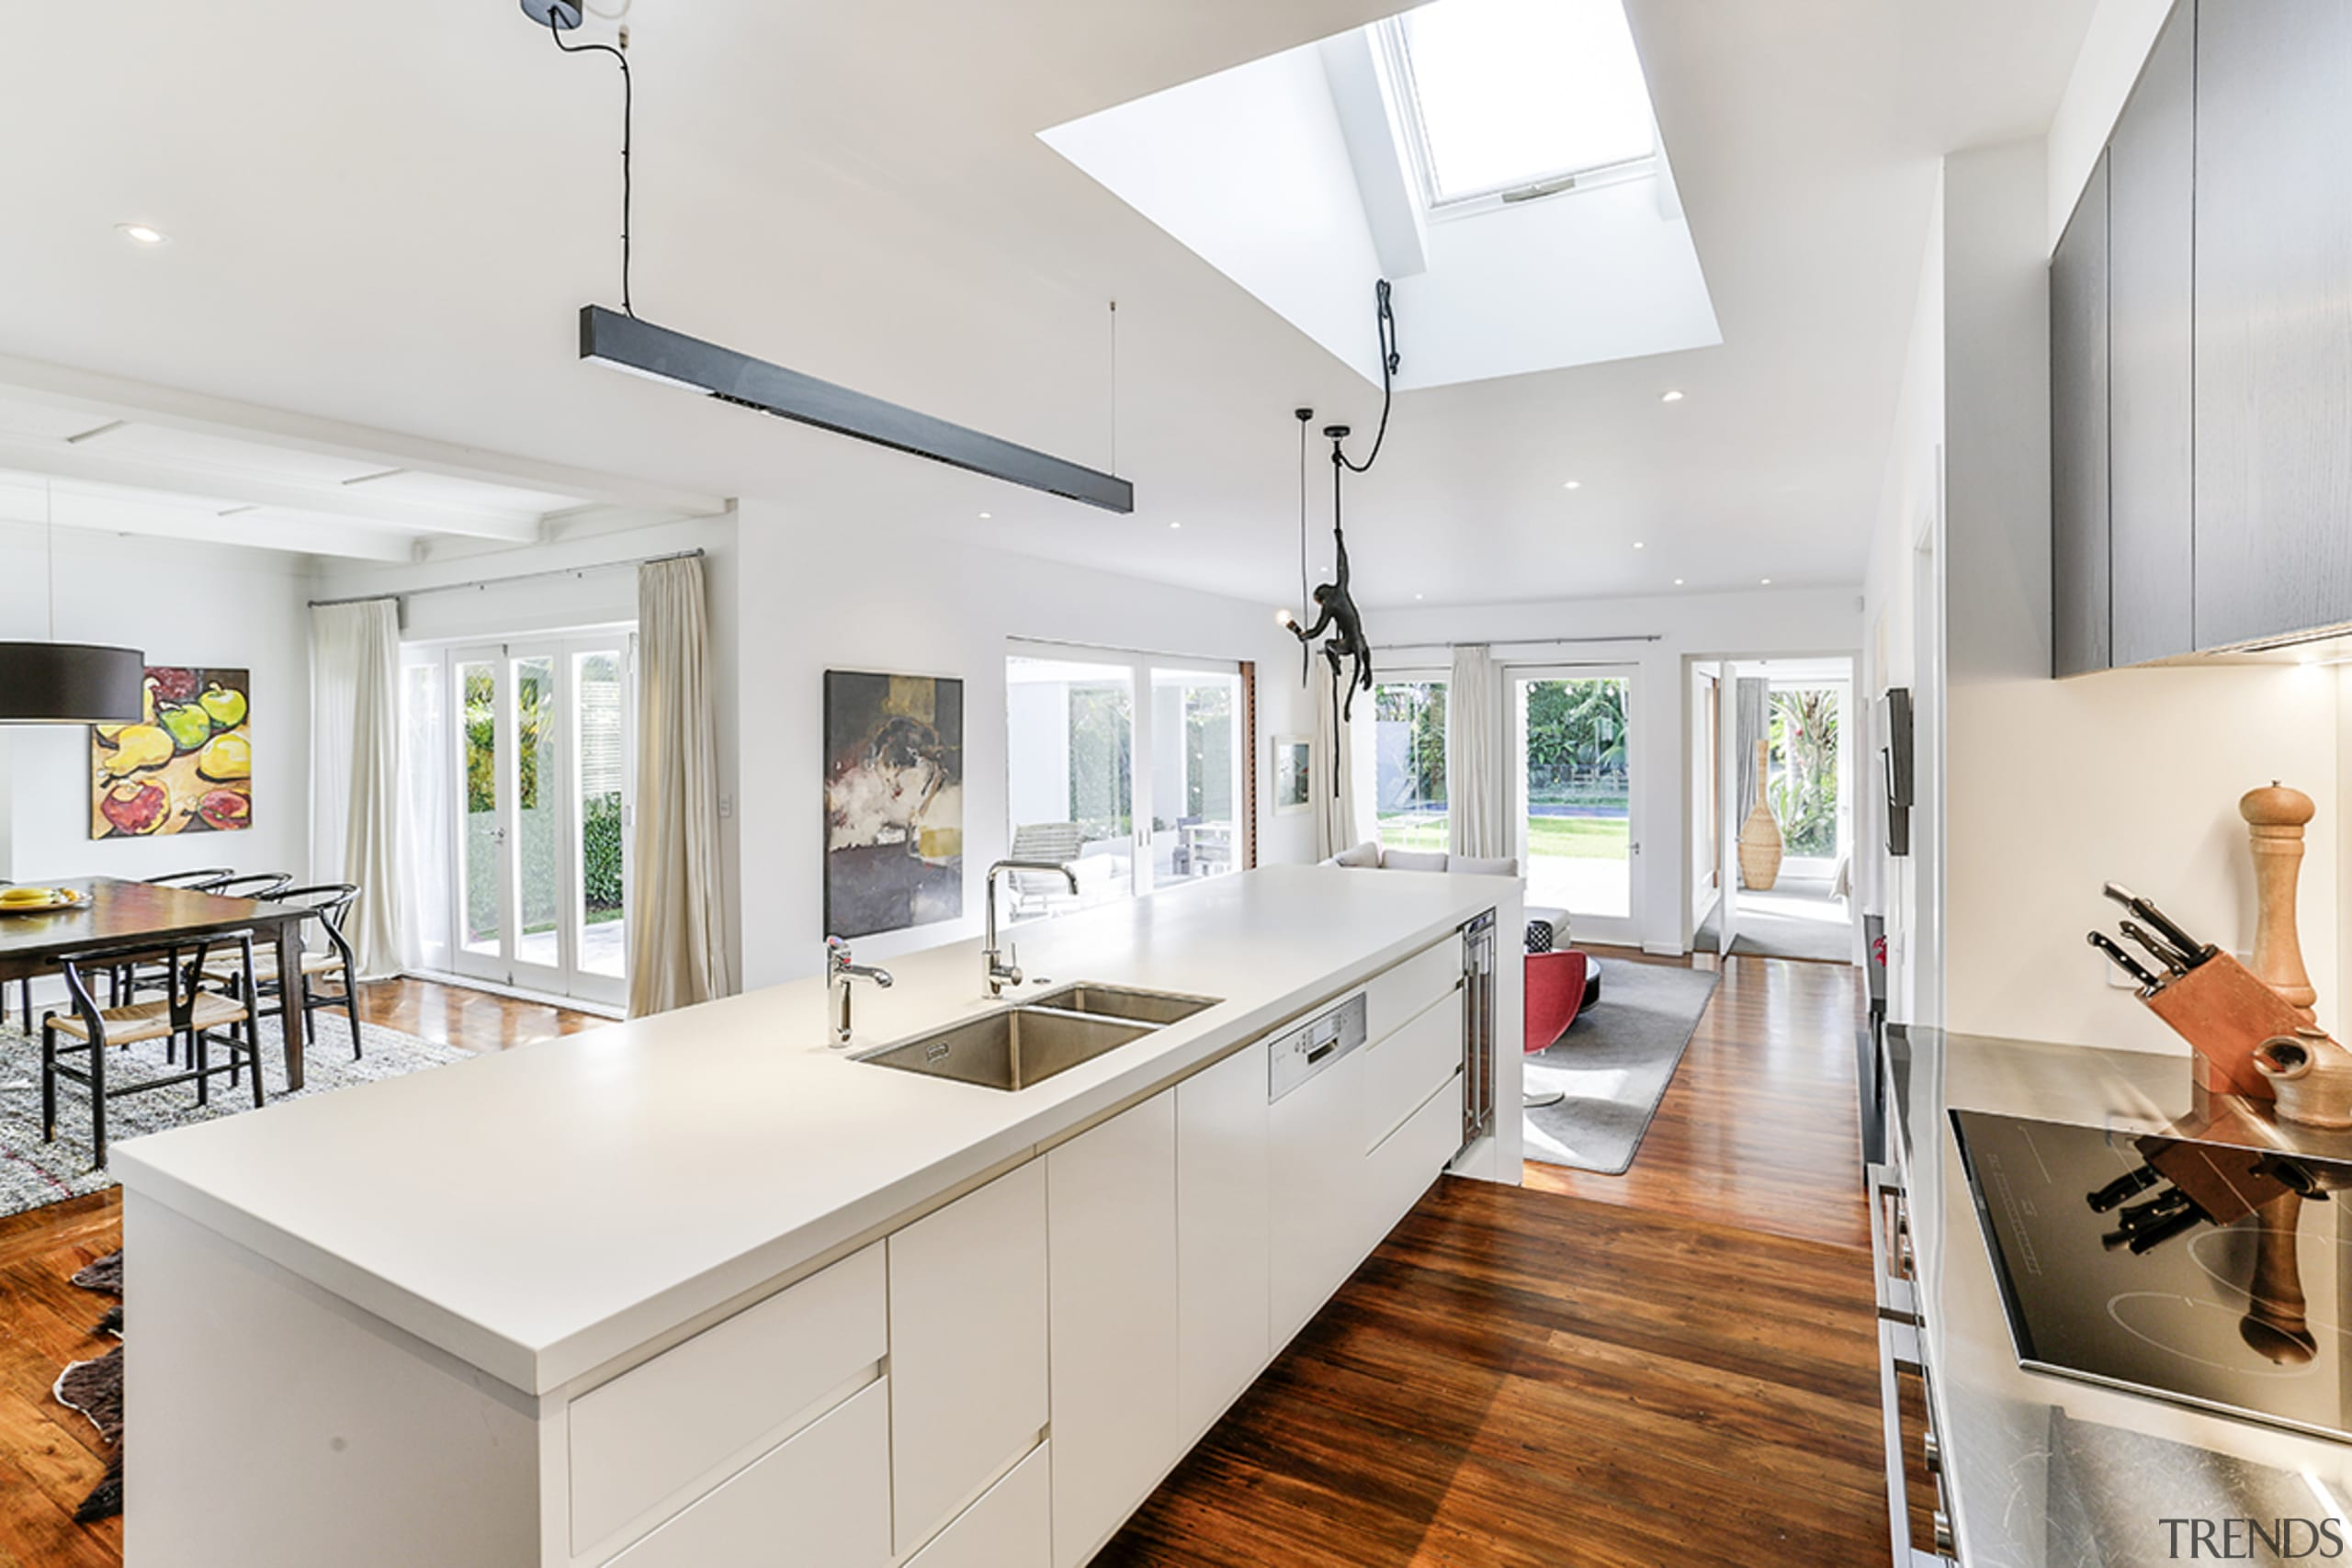 Wood floors contrast white cabinetry in this spacious architecture, building, cabinetry, ceiling, countertop, daylighting, floor, flooring, furniture, hardwood, home, house, interior design, kitchen, property, real estate, room, table, wood flooring, yellow, white